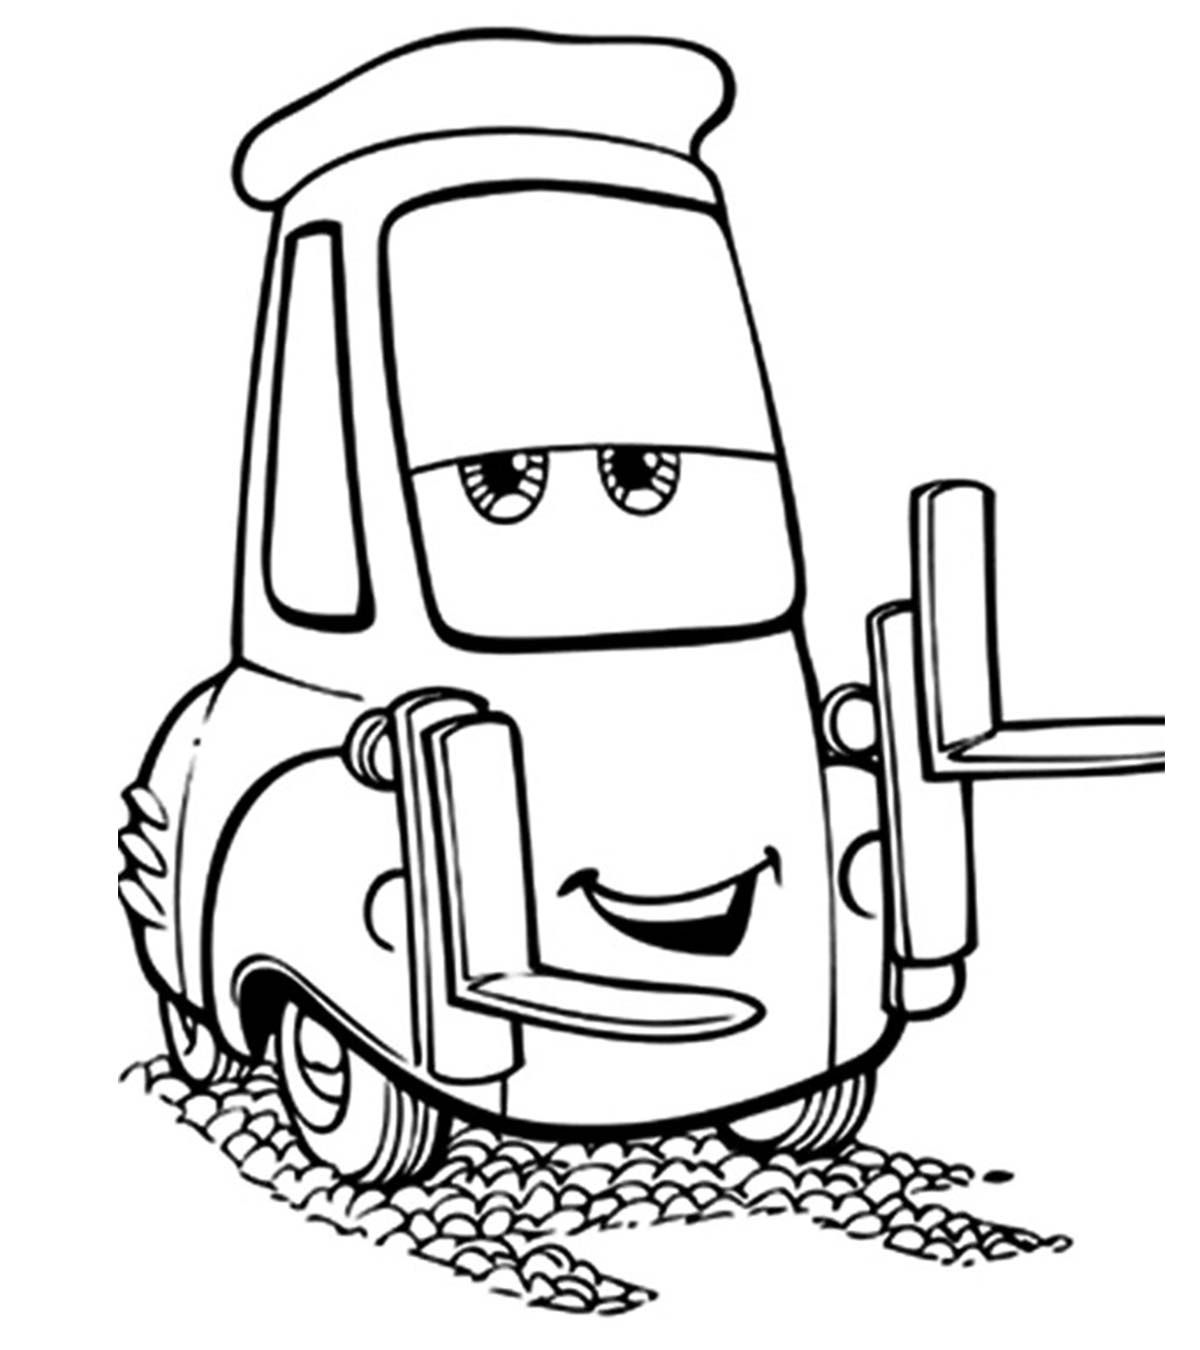 disney pixar cars coloring pages cars 3 for kids cars 3 kids coloring pages coloring pixar cars disney pages